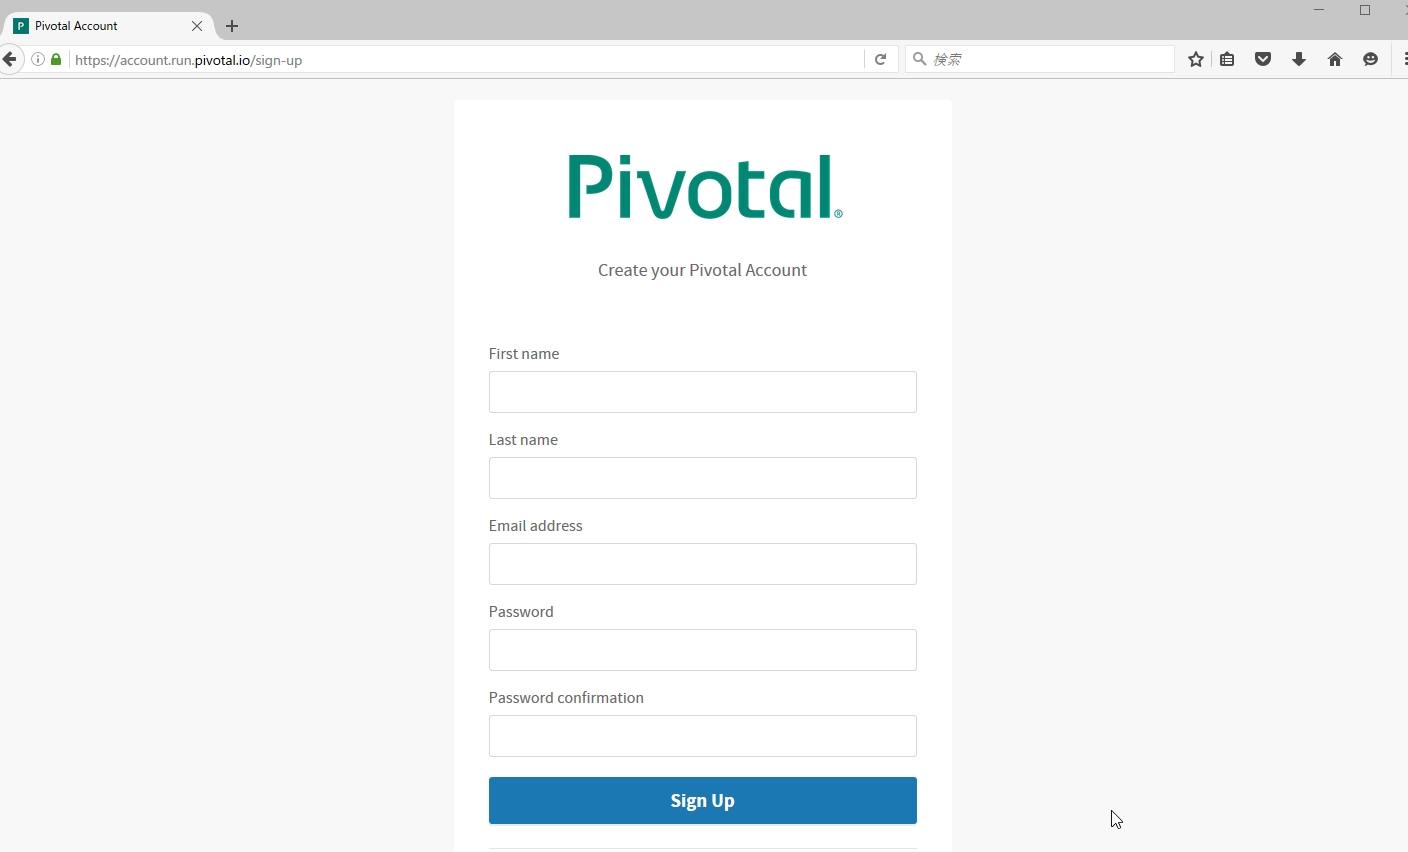 PivotalWebServiceSignUp